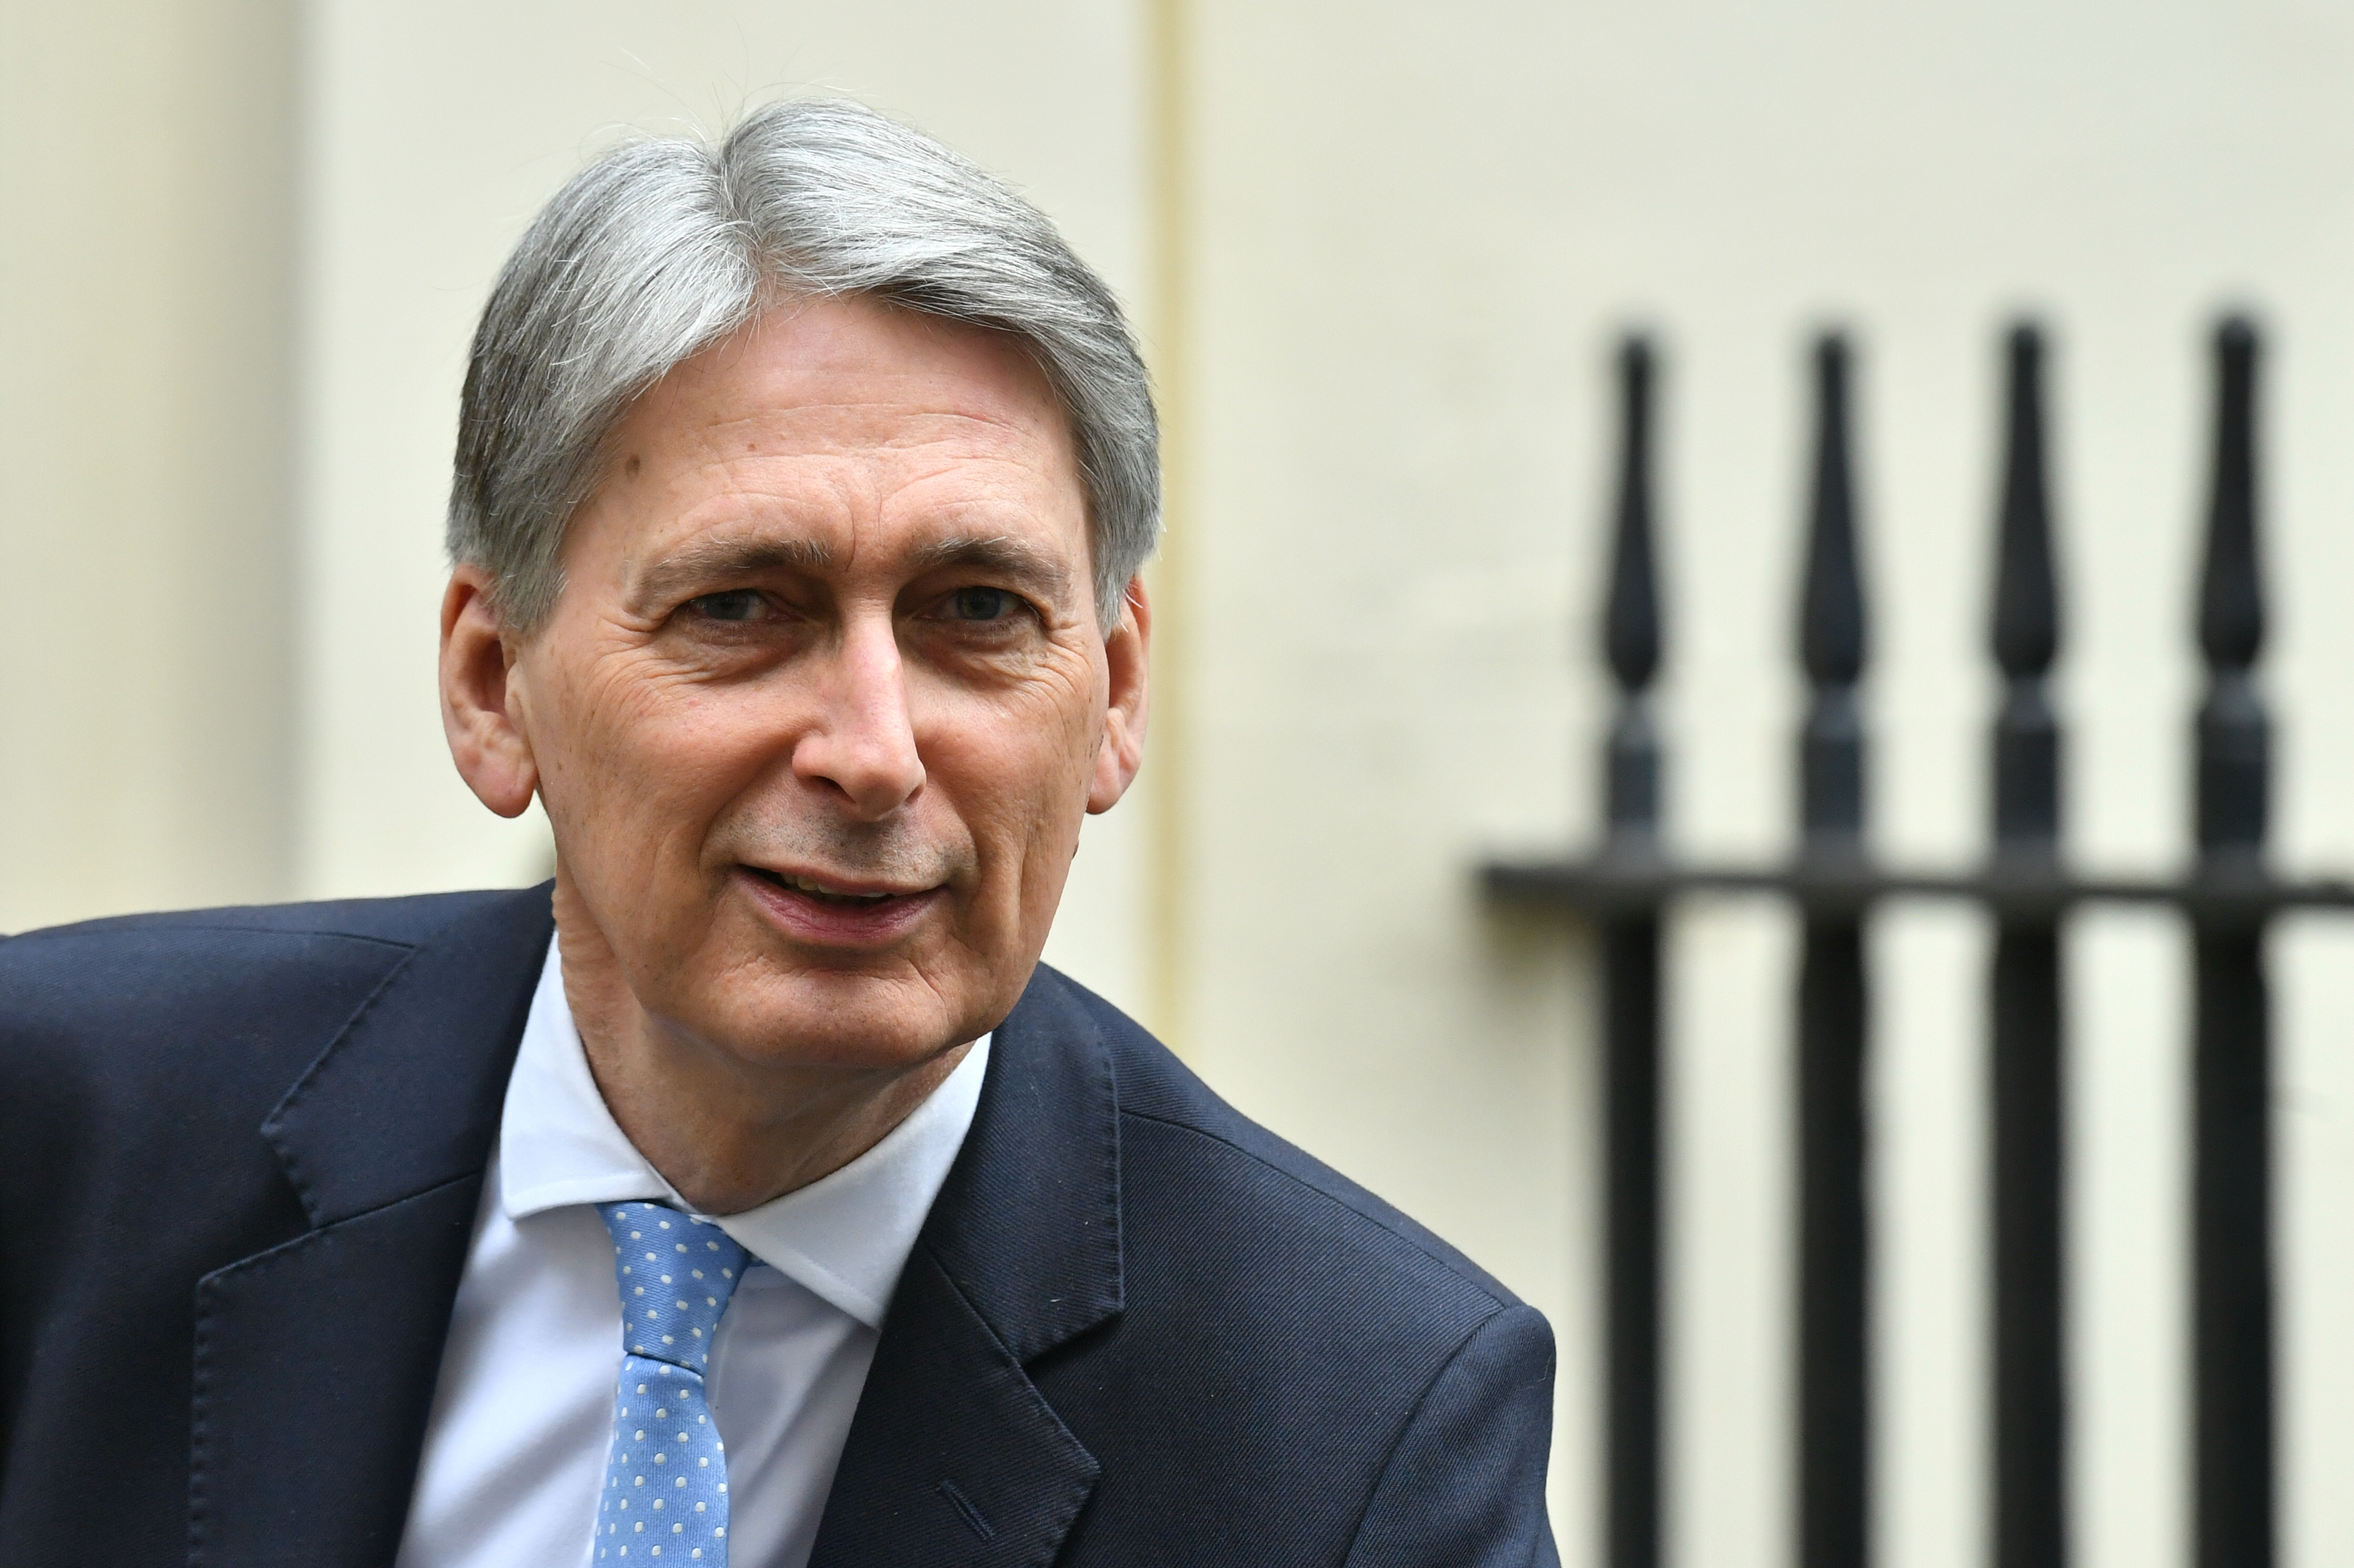 UK Chancellor Phillip Hammond Suggests New Regulation for Digital Firms Possible